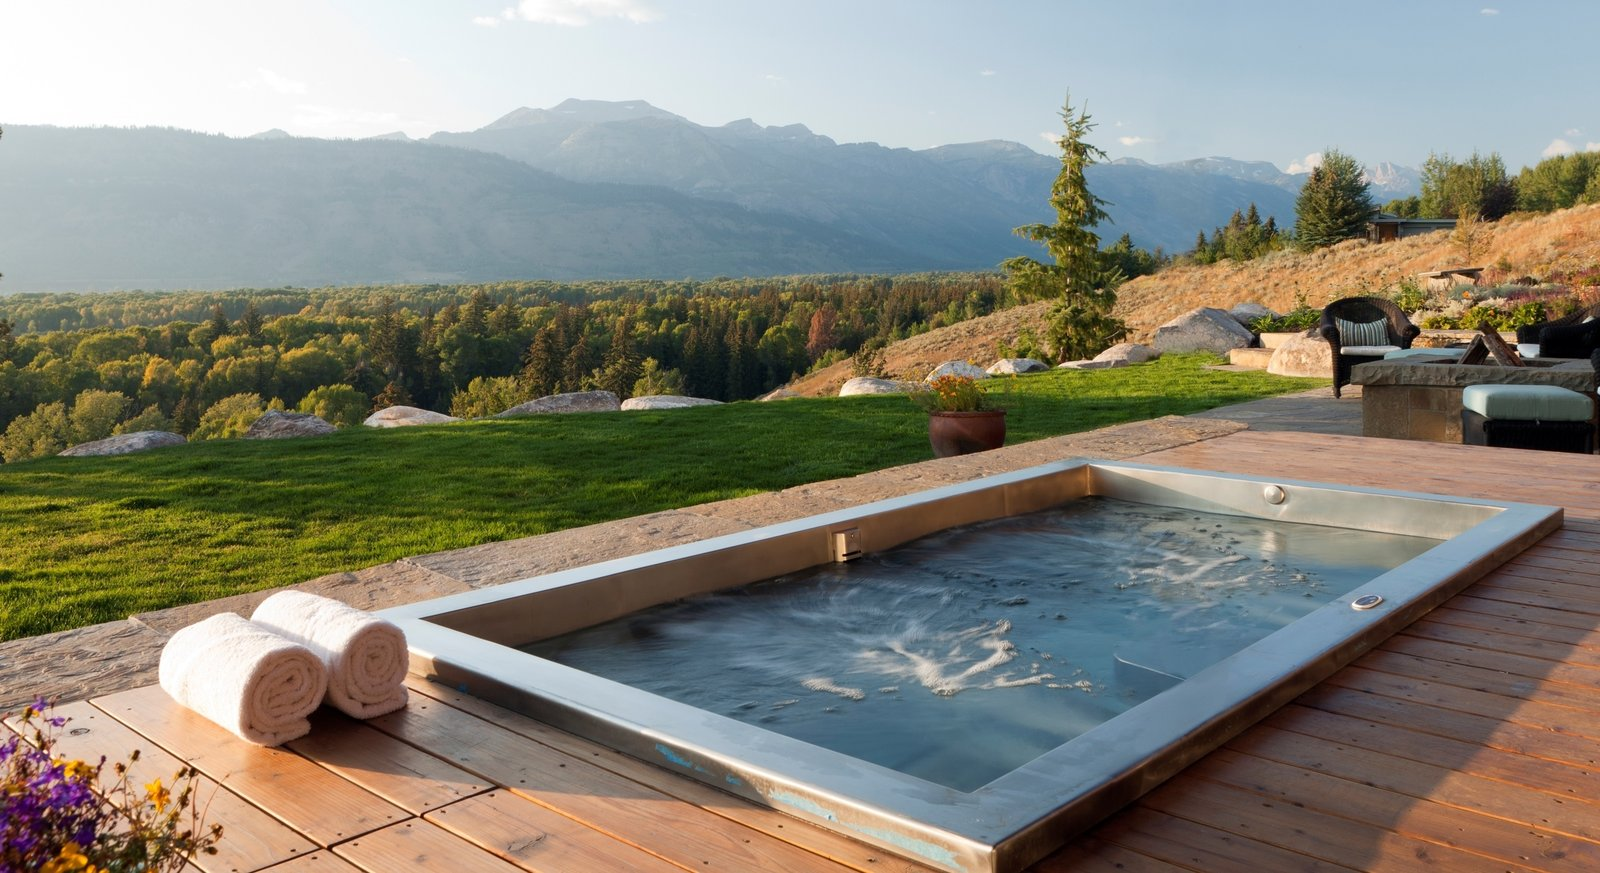 Photo 9 of 11 in 10 Modern Hot Tubs - Dwell